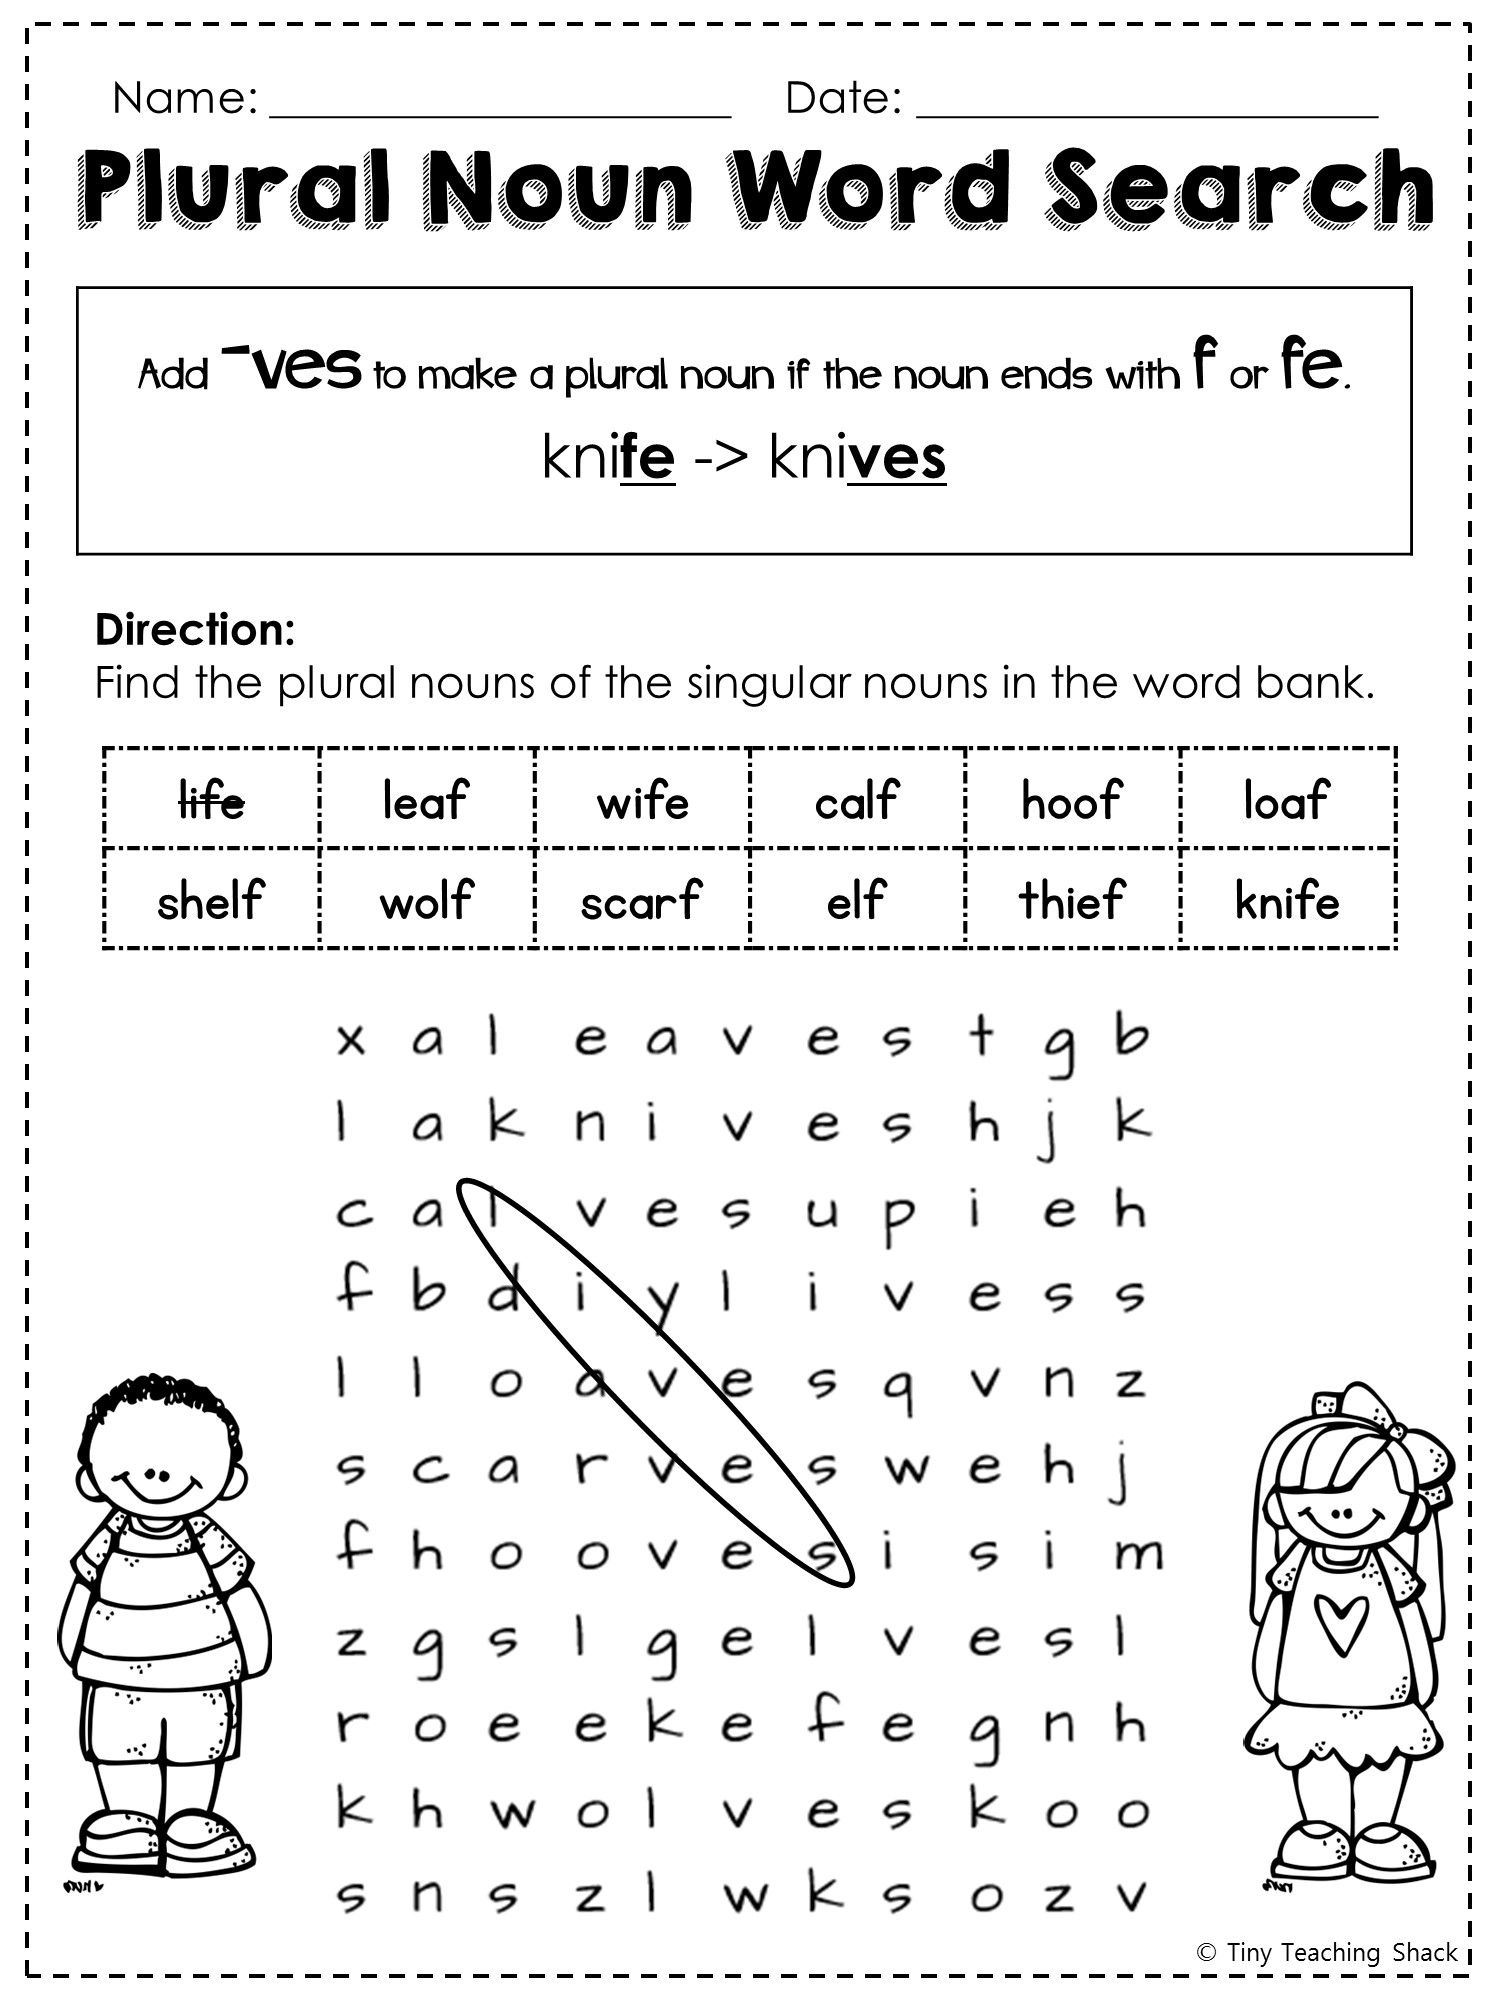 FREE irregular plural noun word search – Irregular Plural Noun Worksheets